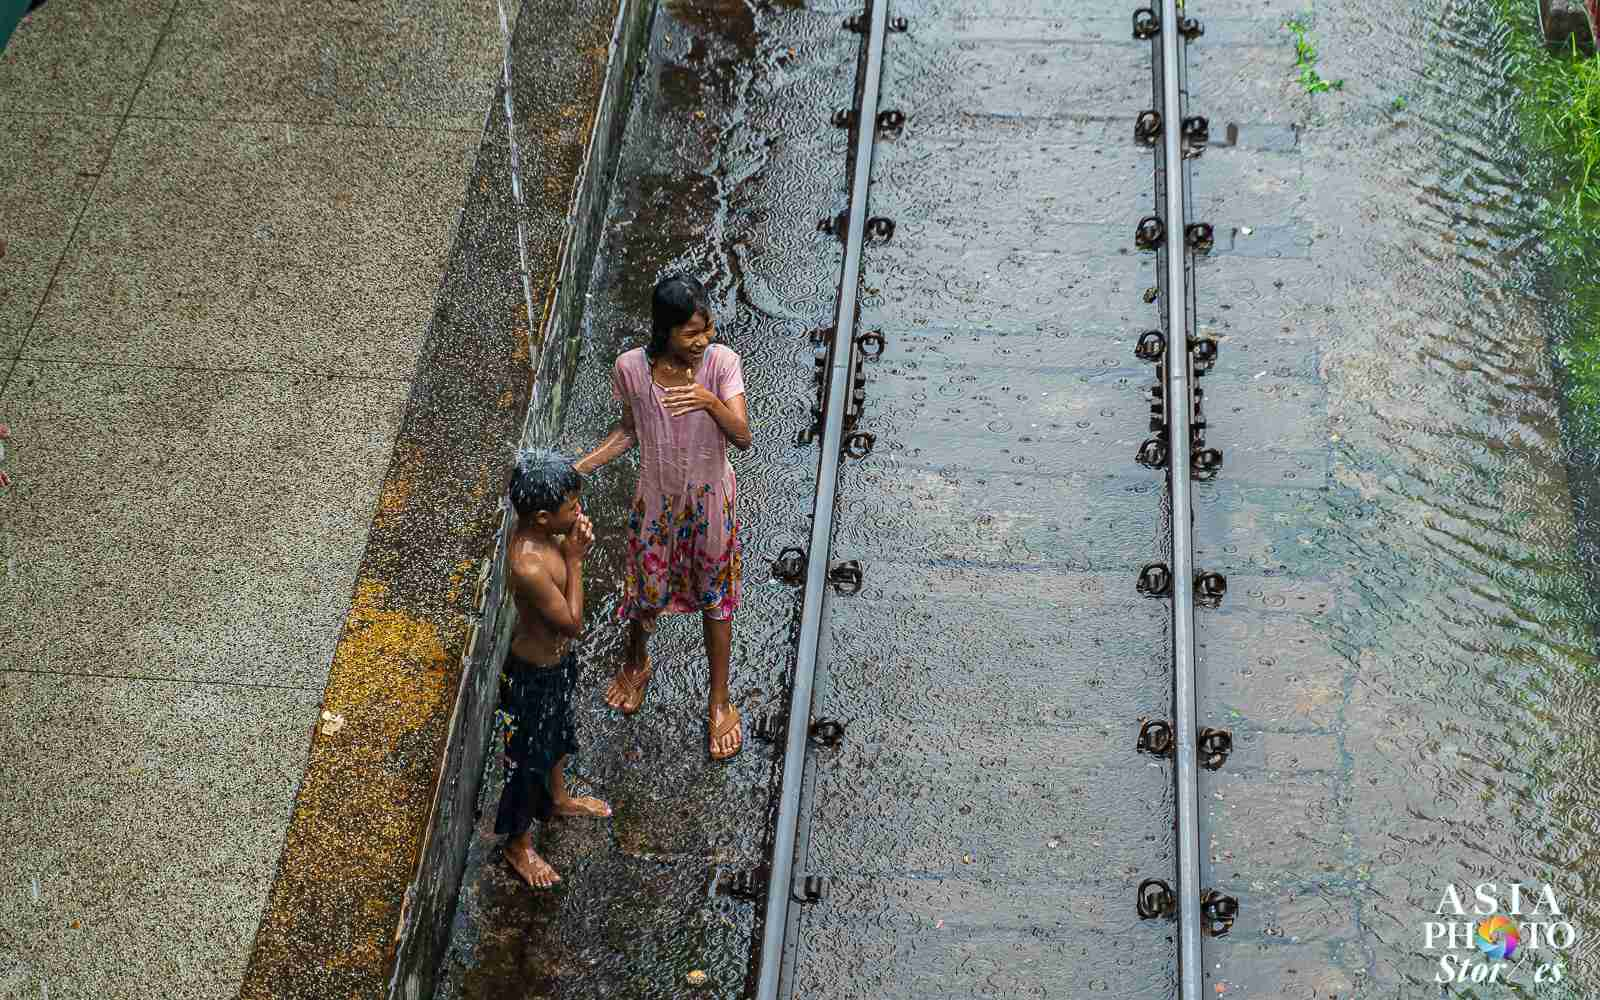 Kids make the most of a heavy downpour at the Yangon Central Rail Station.